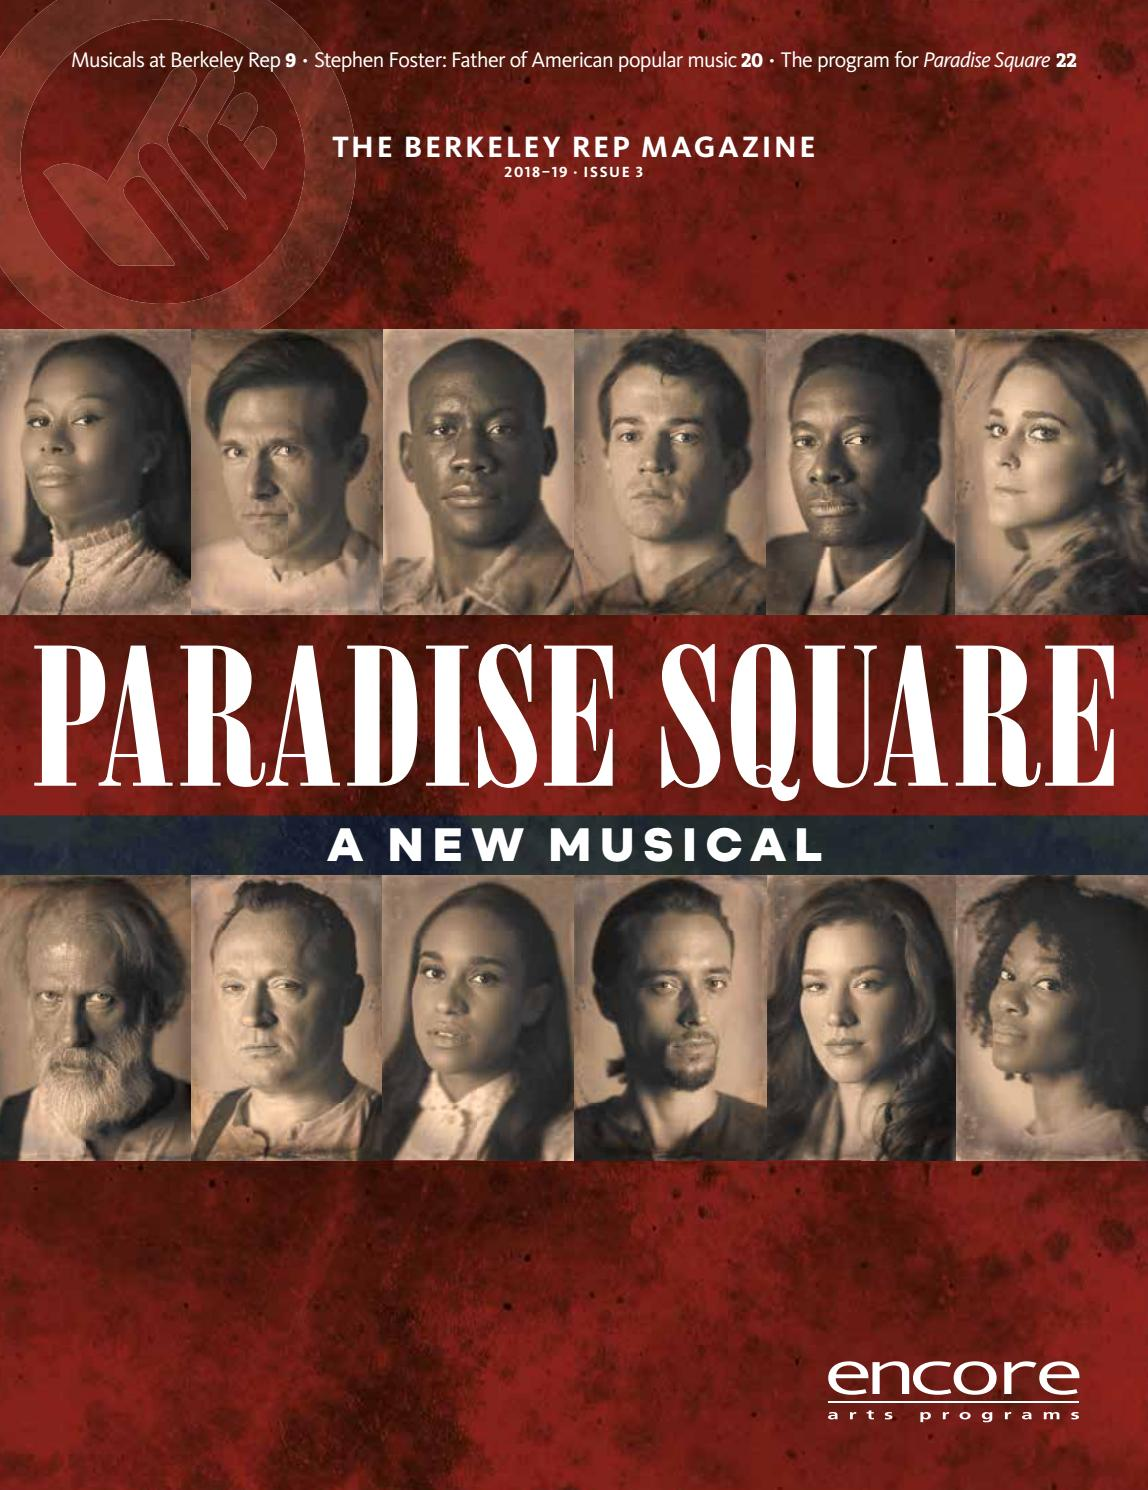 4db37901231a9 Berkeley Rep: Paradise Square by Berkeley Repertory Theatre - issuu